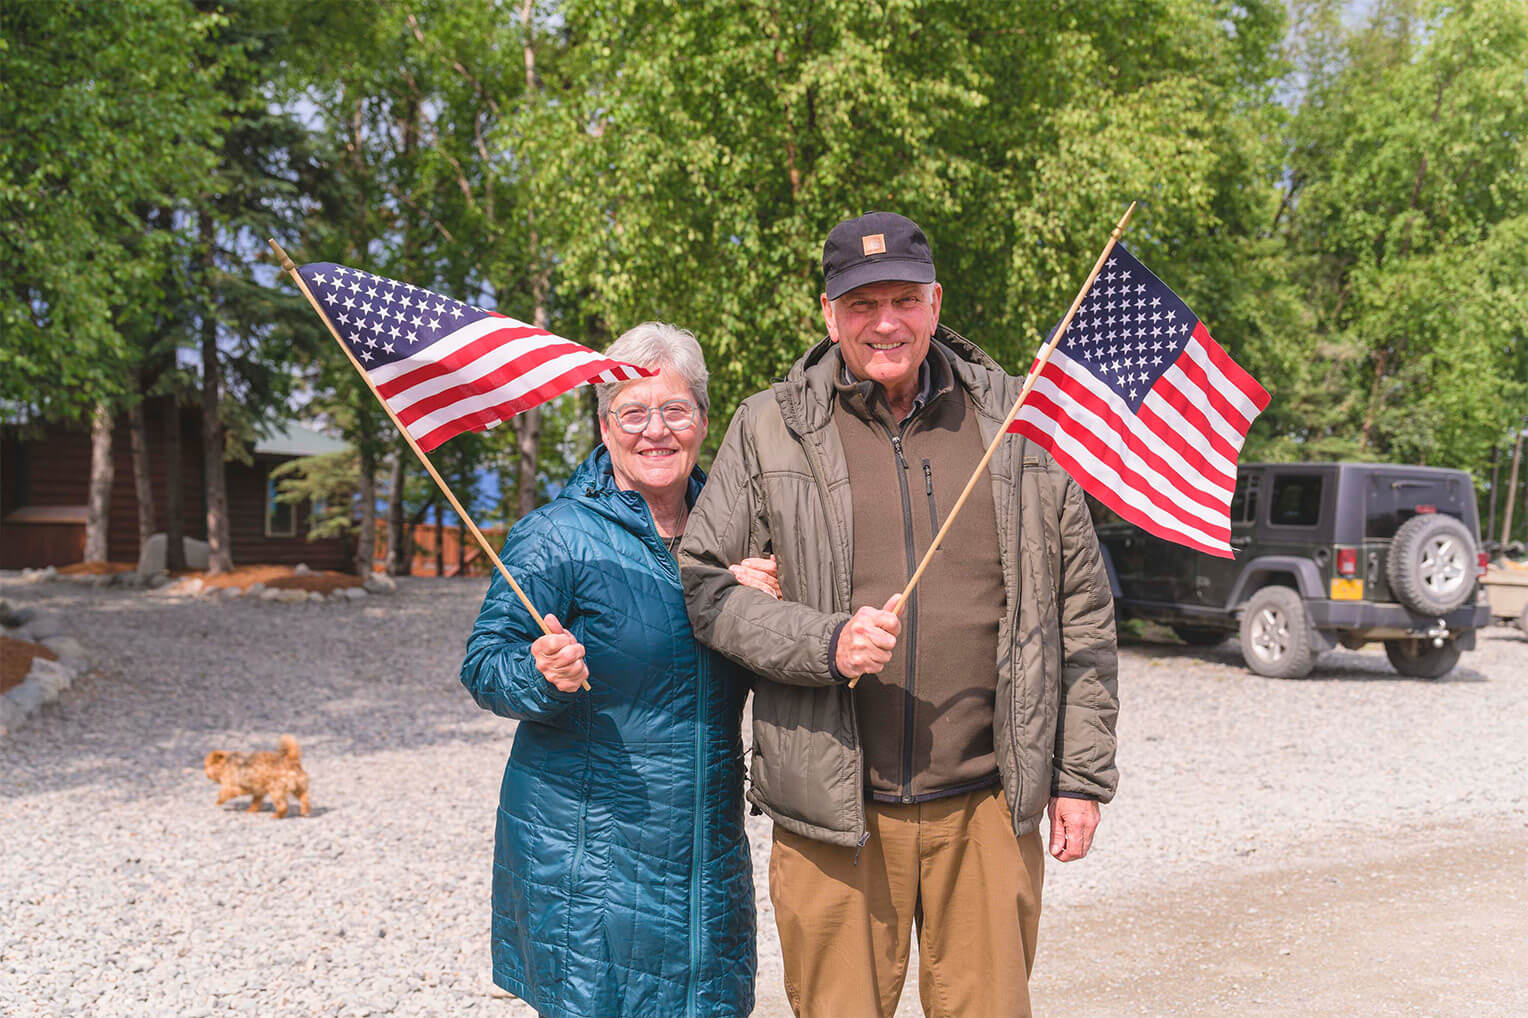 Franklin and Jane Graham welcomed military couples to Samaritan Lodge on the Fourth of July.